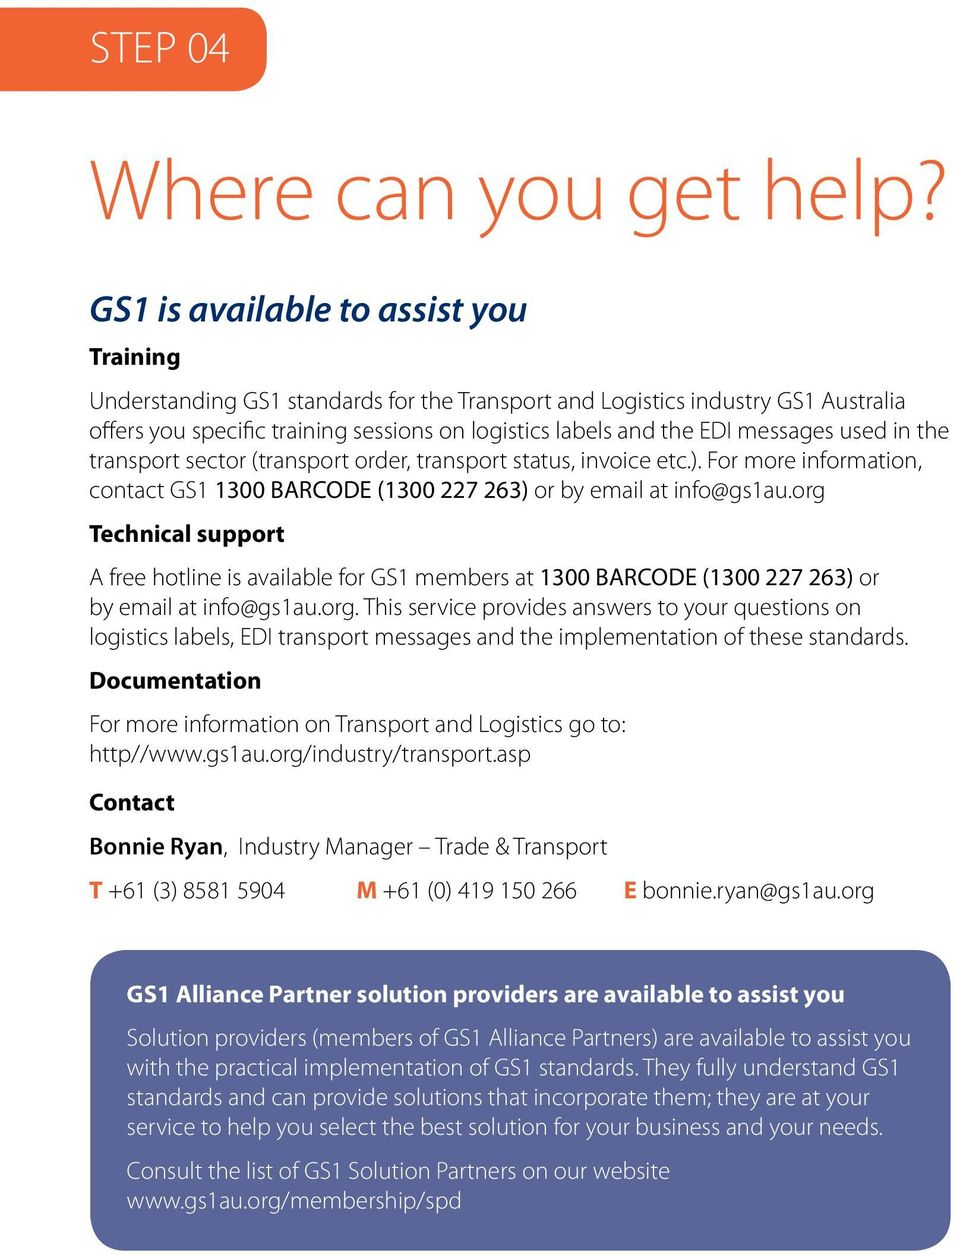 messages used in the transport sector (transport order, transport status, invoice etc.). For more information, contact GS1 1300 BARCODE (1300 227 263) or by email at info@gs1au.